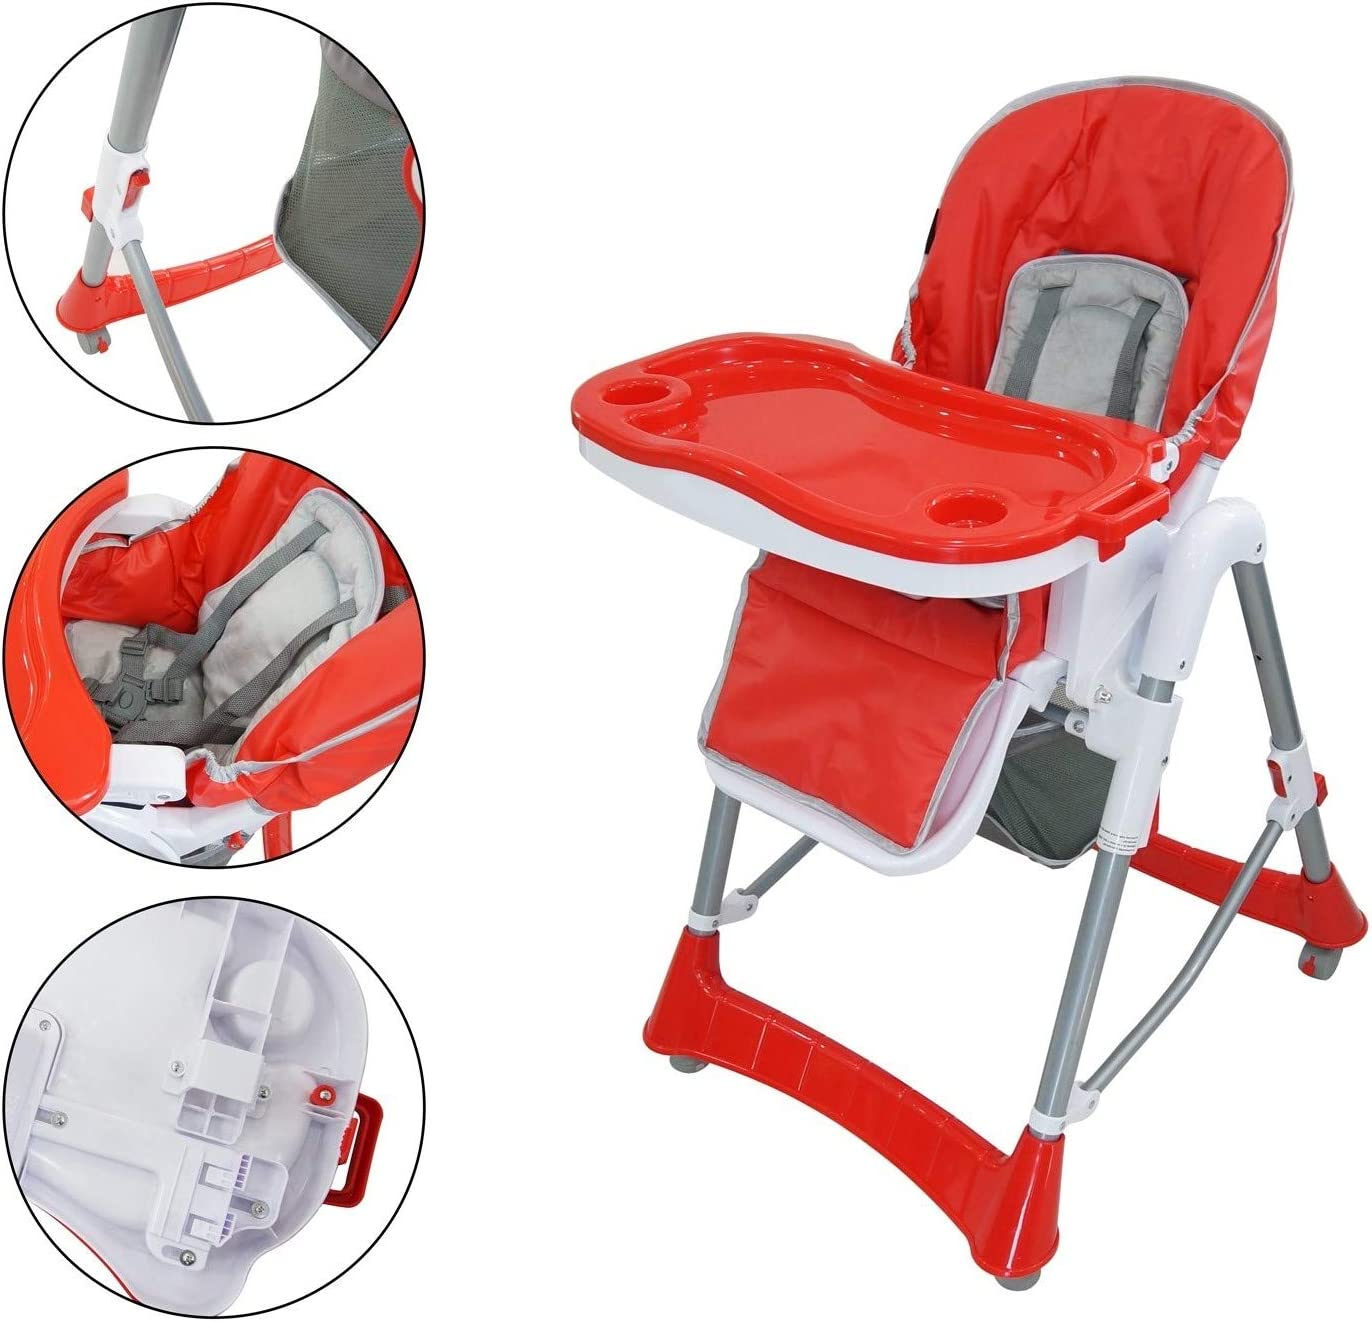 Sotech Baby Foldable Chair, Baby High Chair, Red, Deployed Size: 105 x 75 x 60 cm, Material: PP